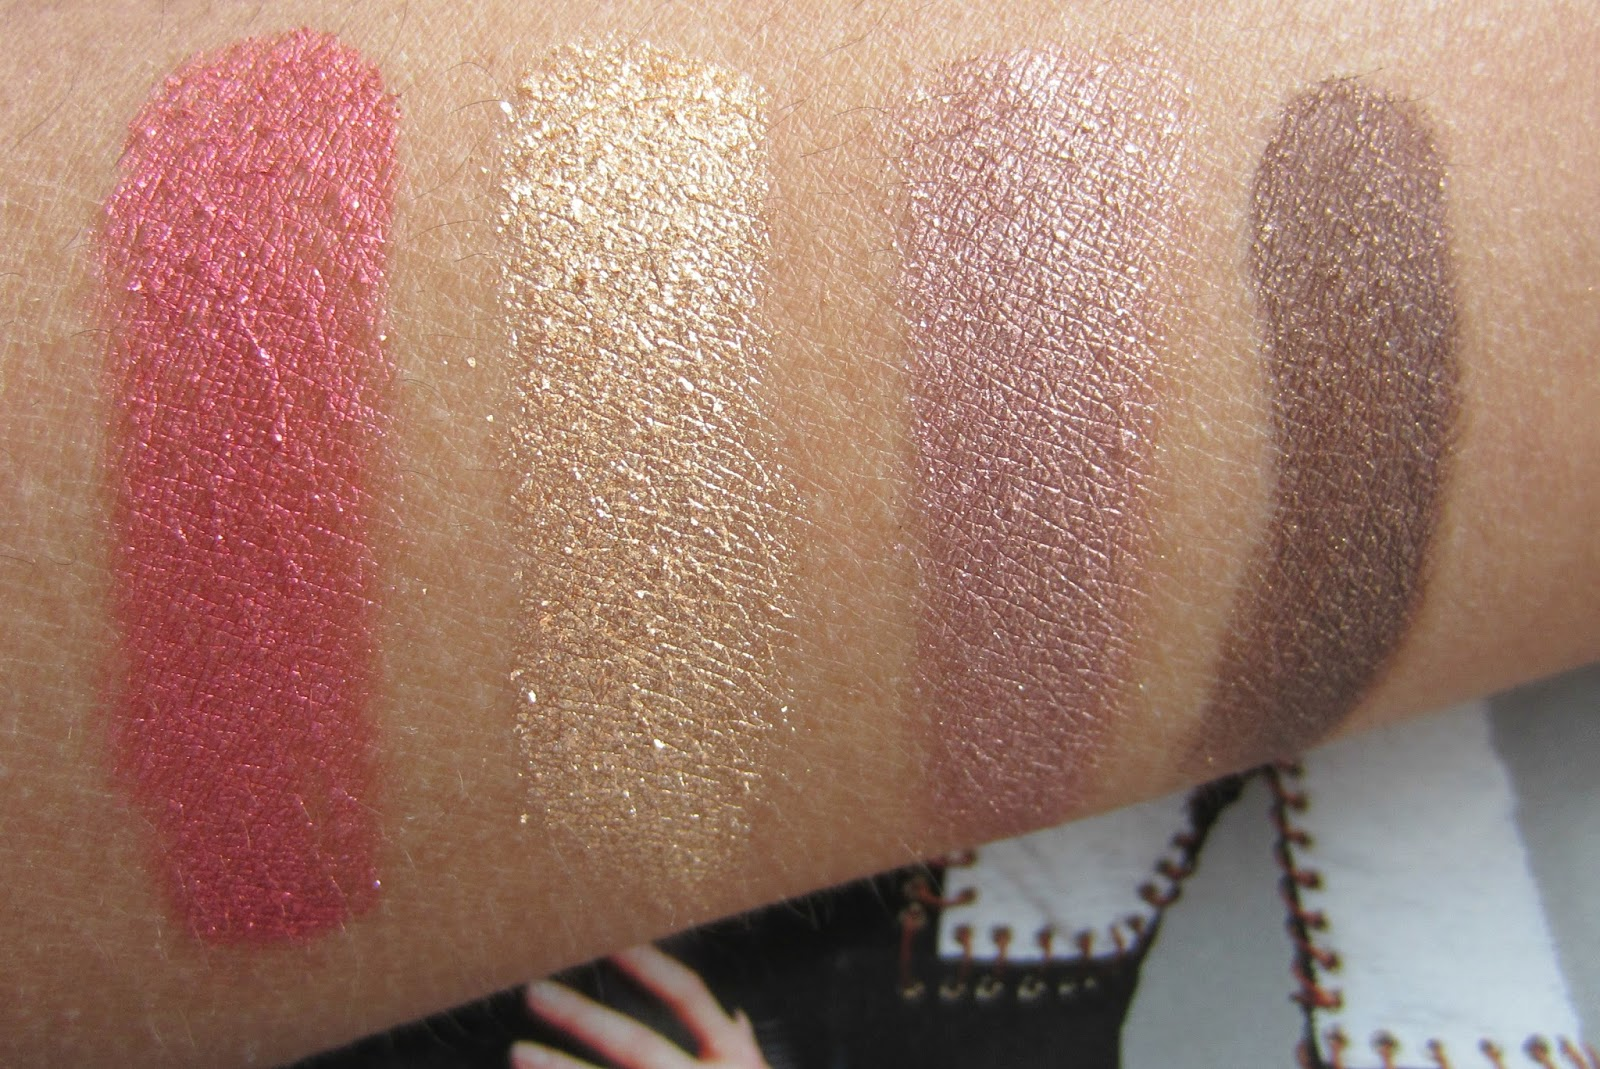 Milani Baked Eyeshadows in I heart You, Drench In Gold, Fusion, Rich Java wet swatches